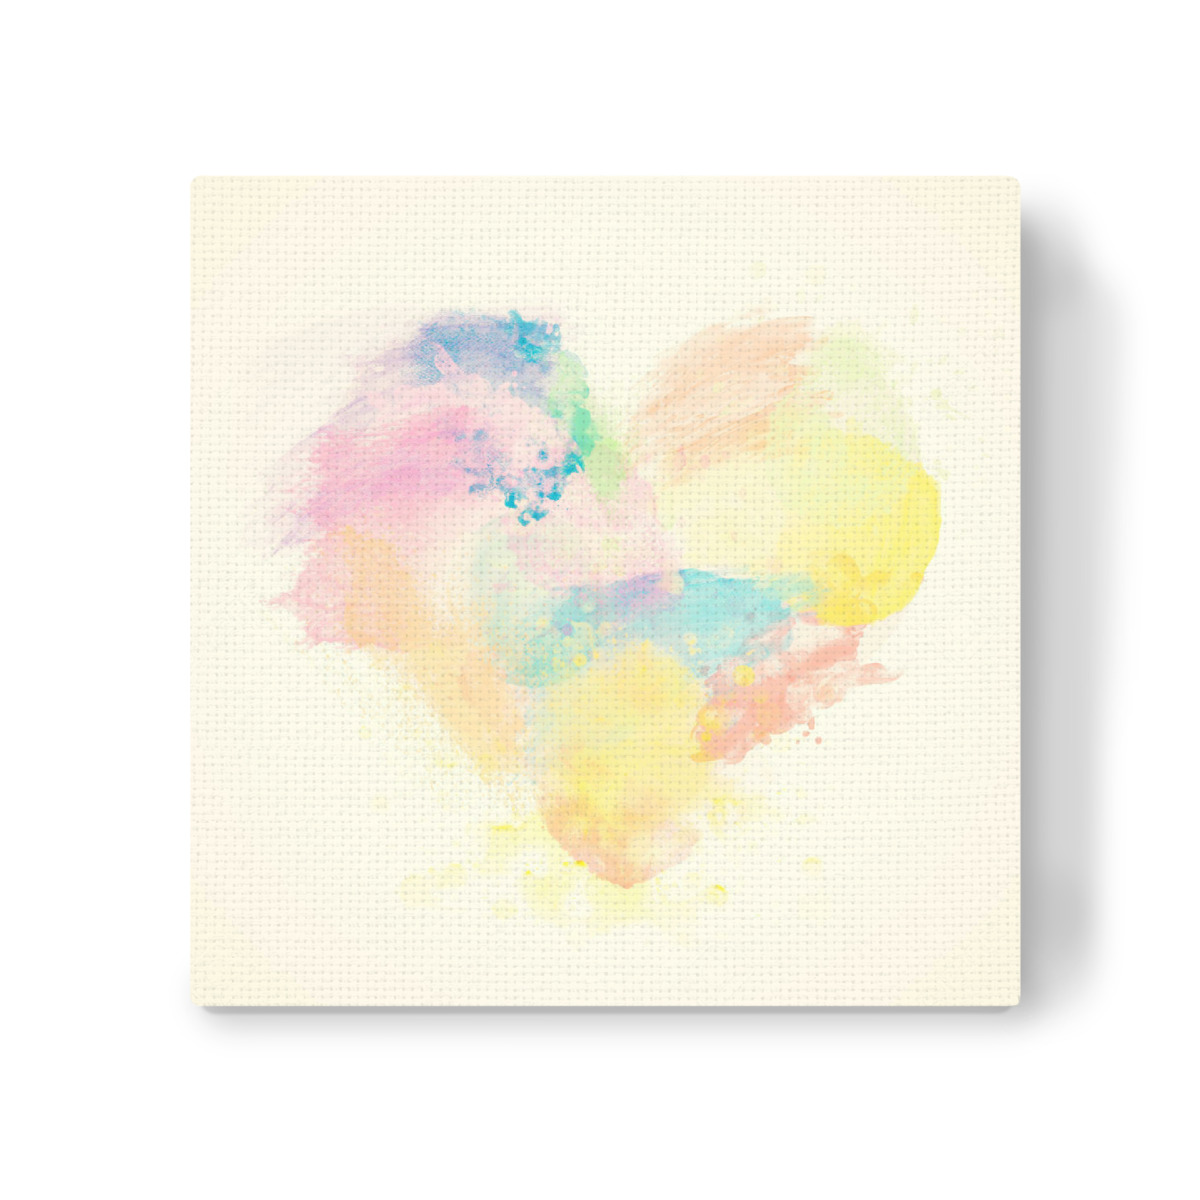 Colorful Watercolor Heart On Canvas Als Leinwand Bei Artboxone Kaufen